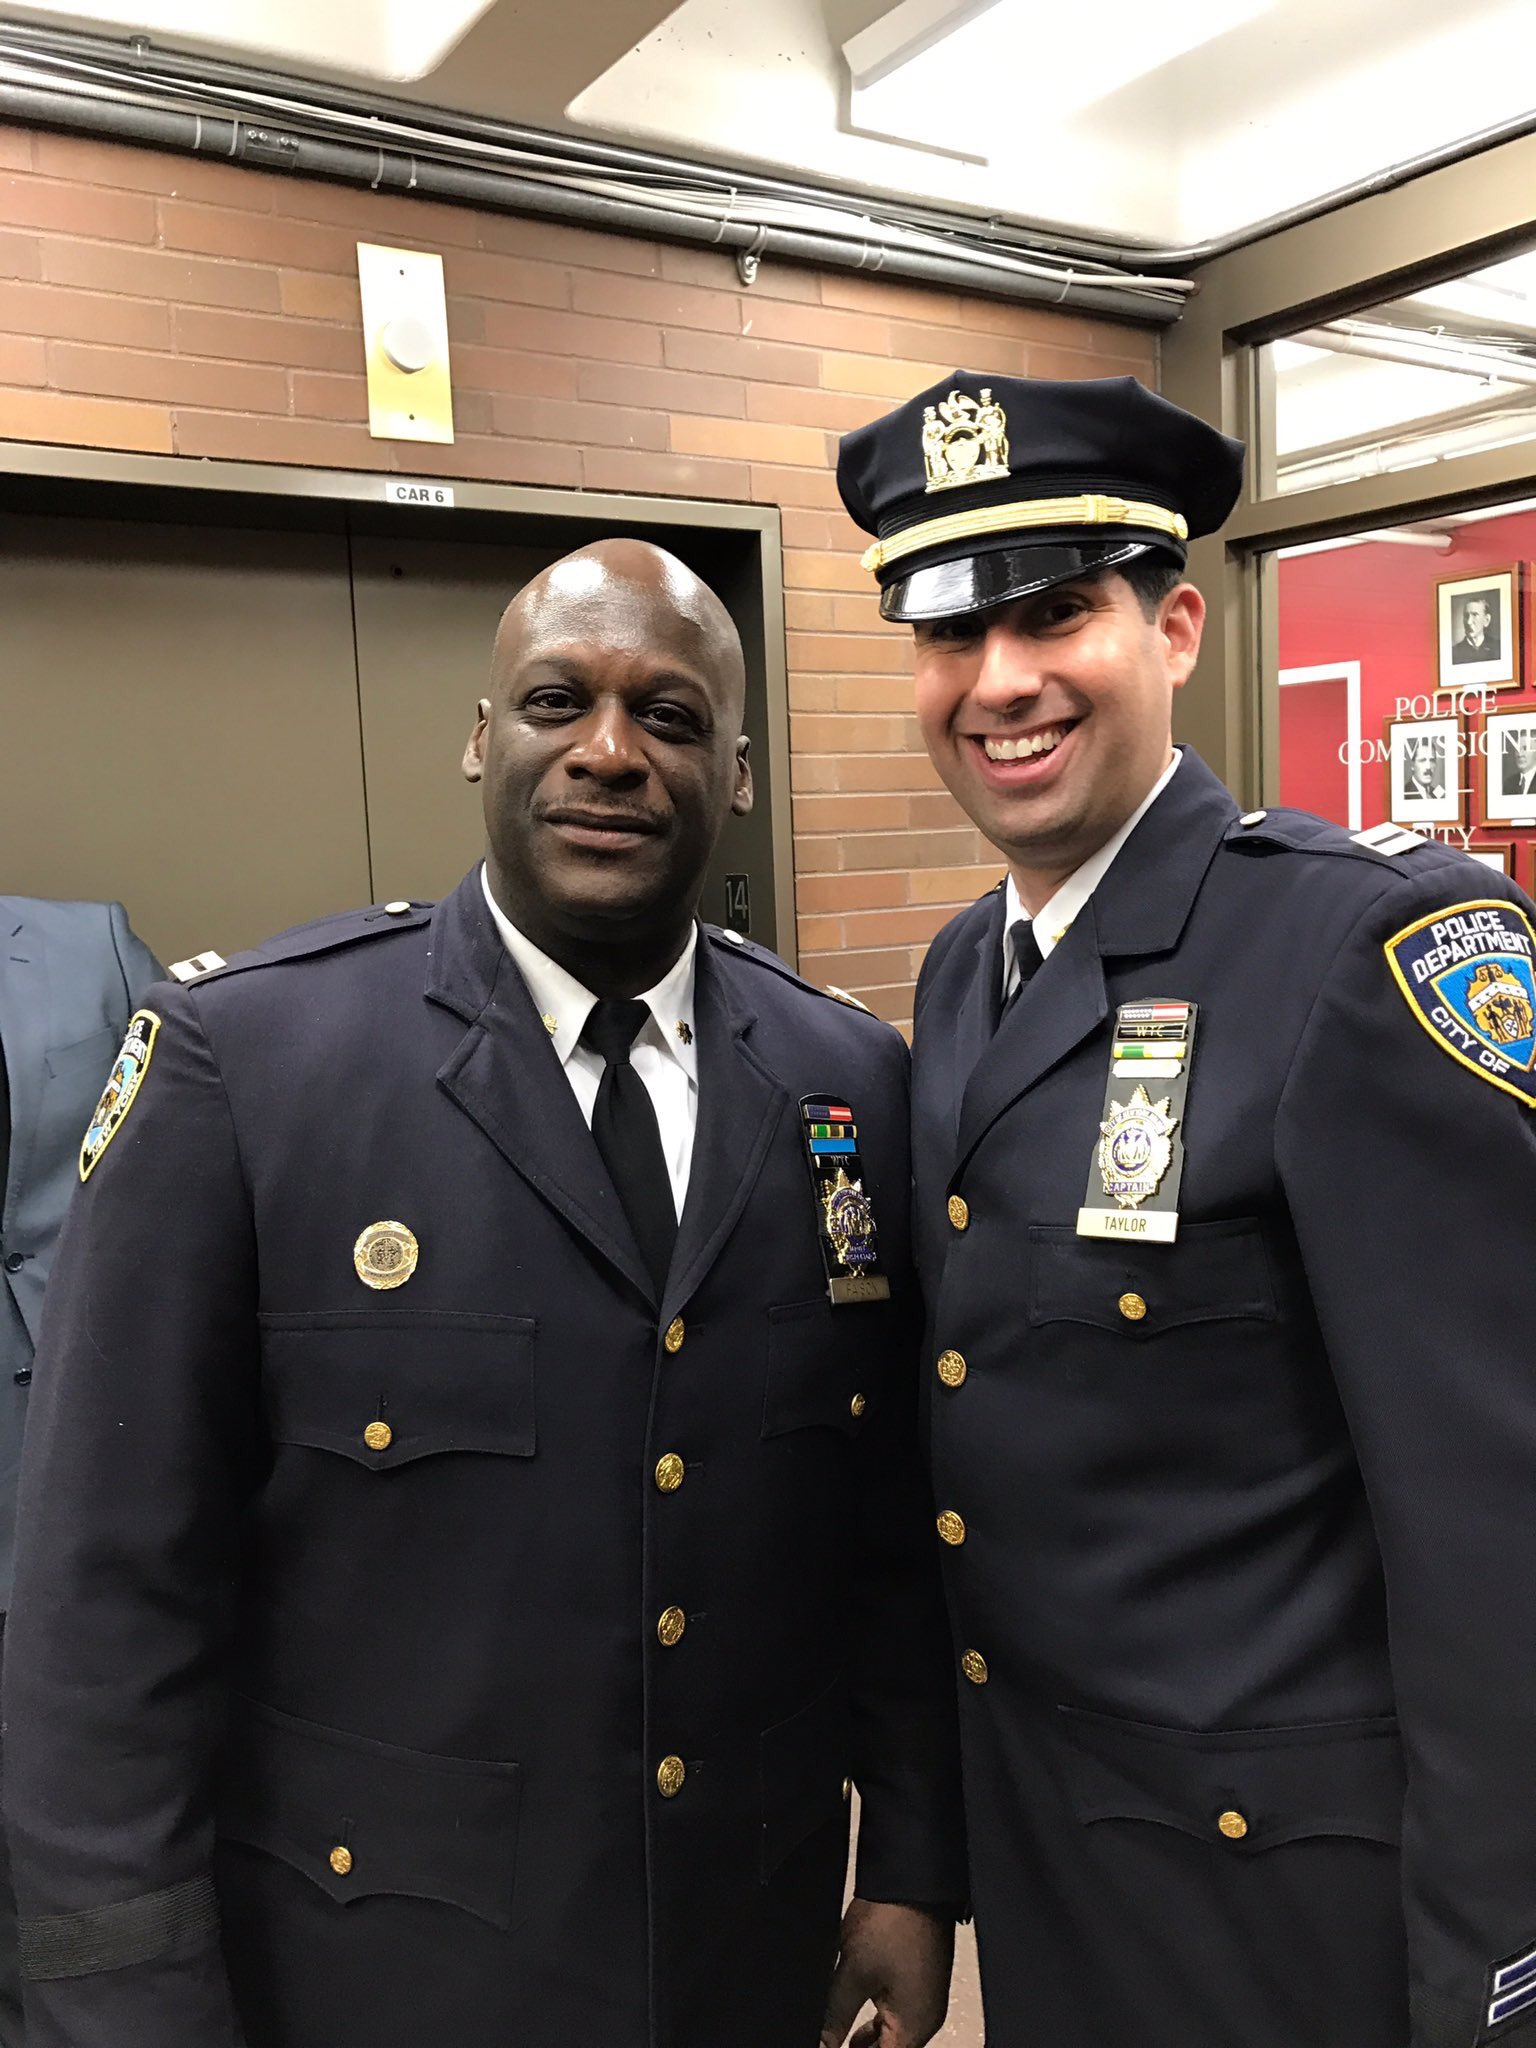 nypd 61st precinct on twitter   u0026quot congratulations to our